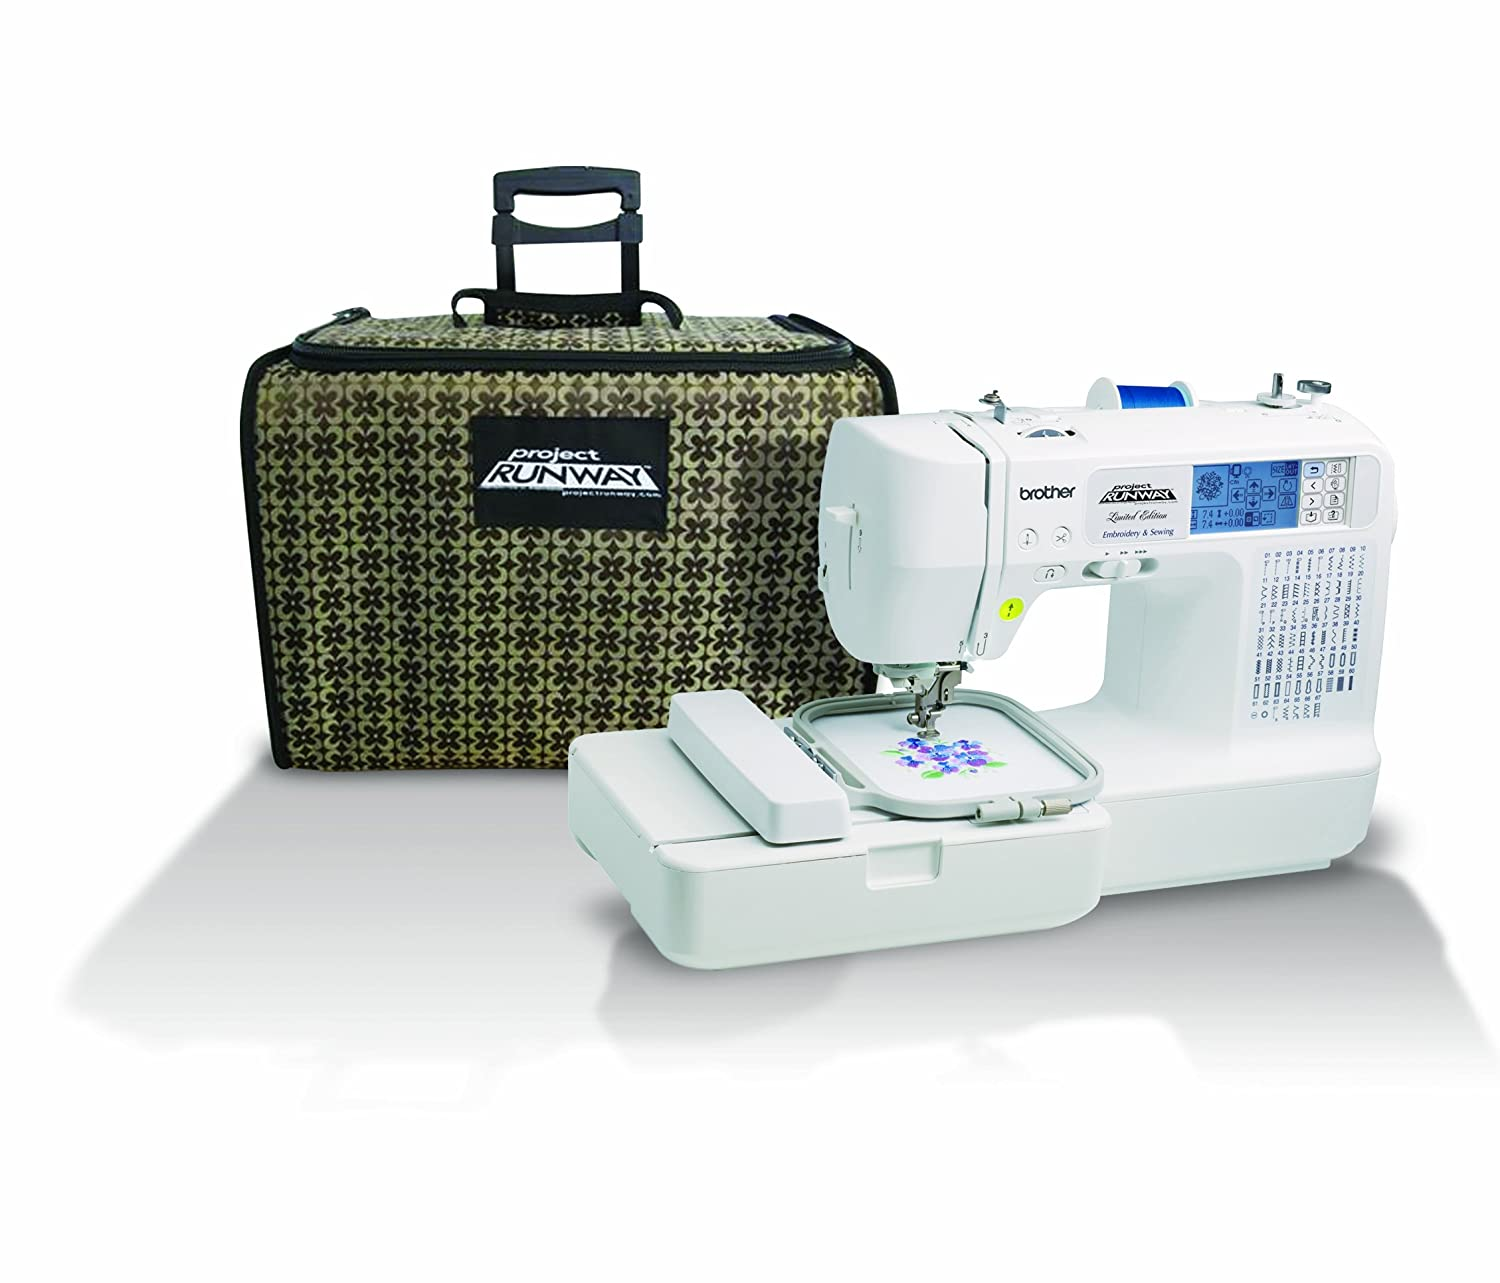 Brother LB6800PRW Scheme Runway Computerized Embroidery plus Sewing Machine Along with Rolling Carrying Case